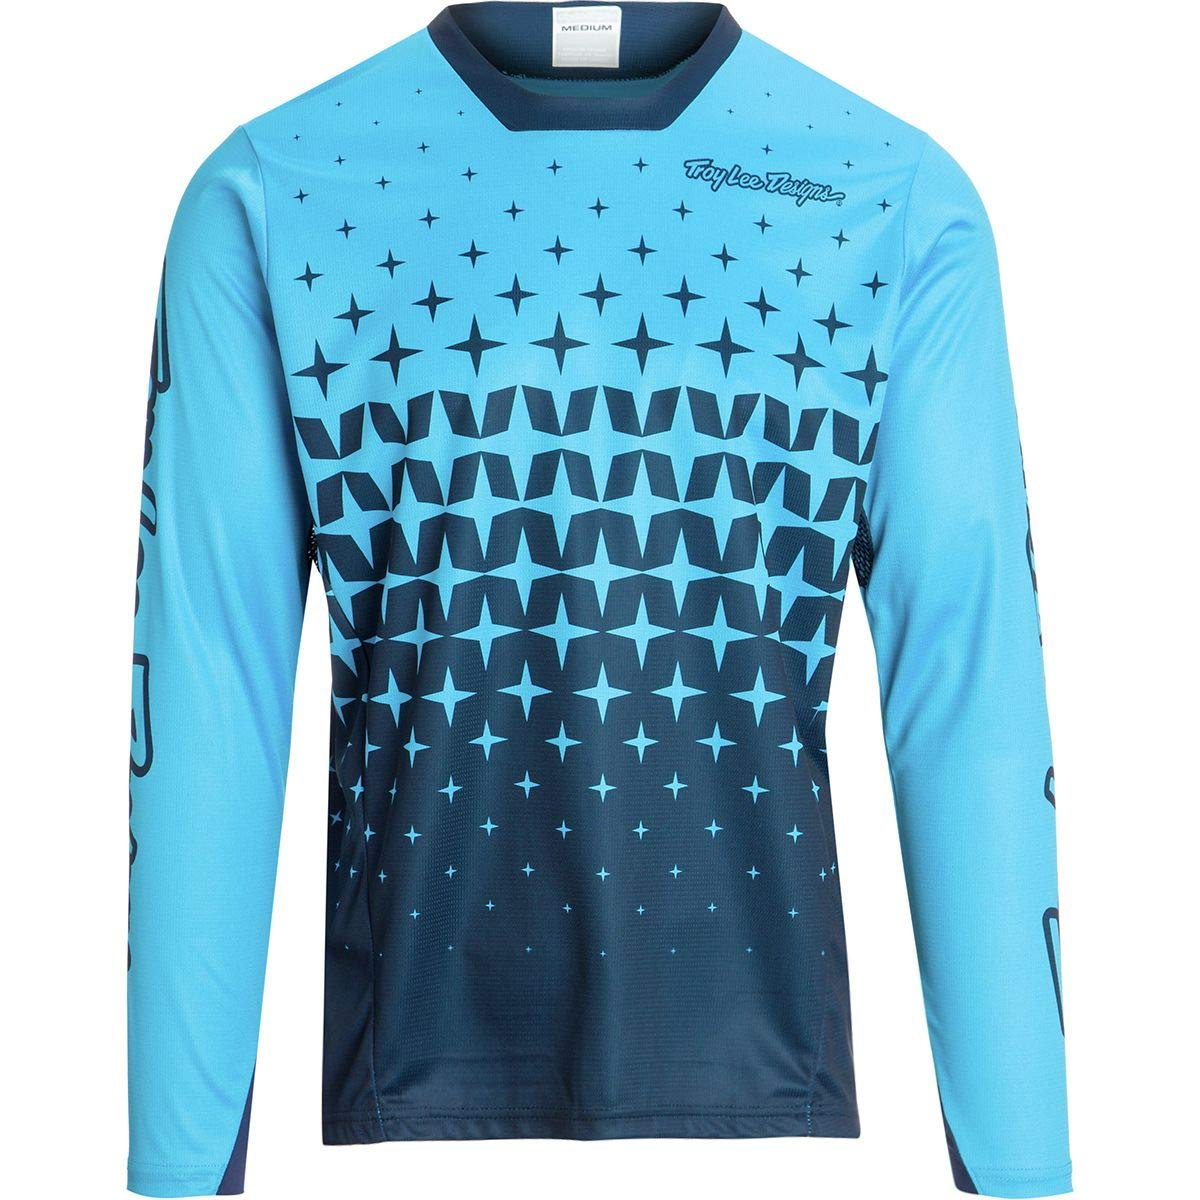 Troy Lee Designs Sprint Jersey - Men's Megaburst Ocean/Navy, S